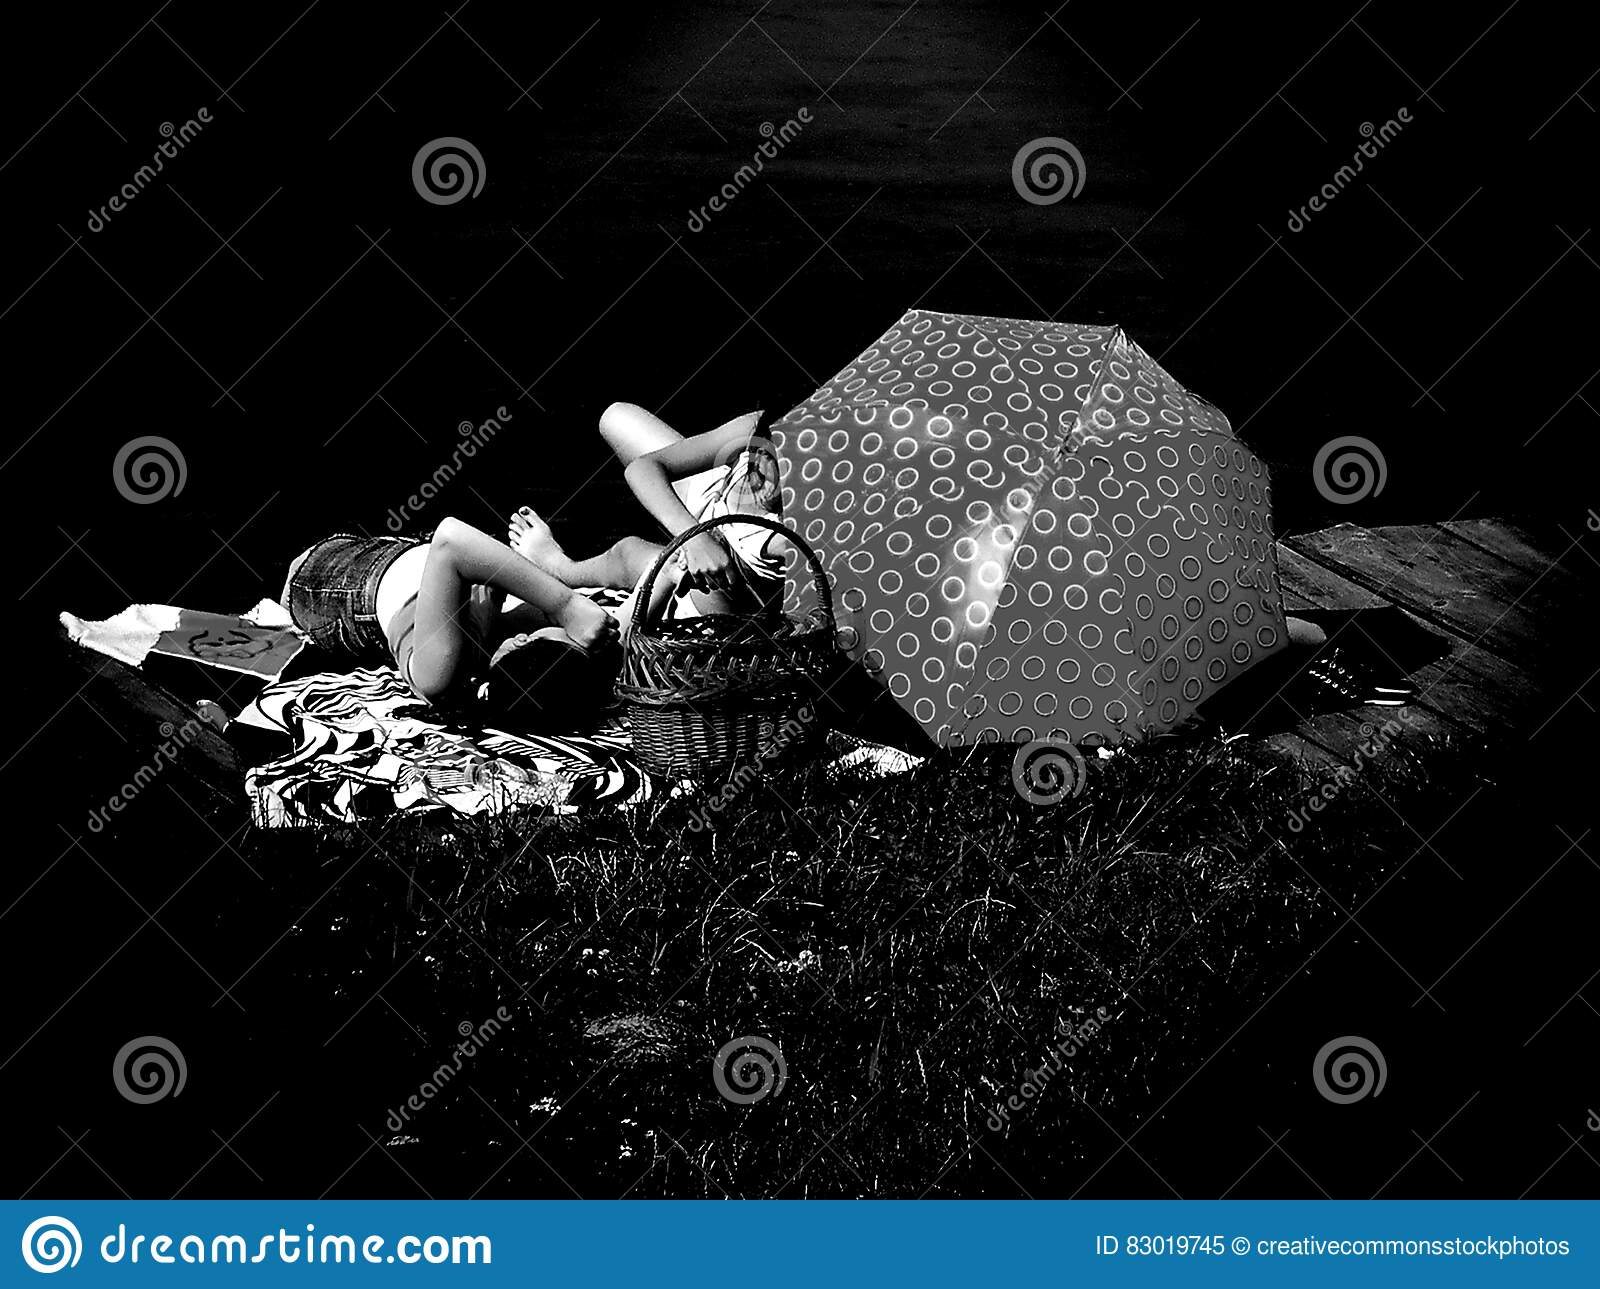 Download People Laying On Blanket Grayscale Photo Stock Image - Image of black, dark: 83019745